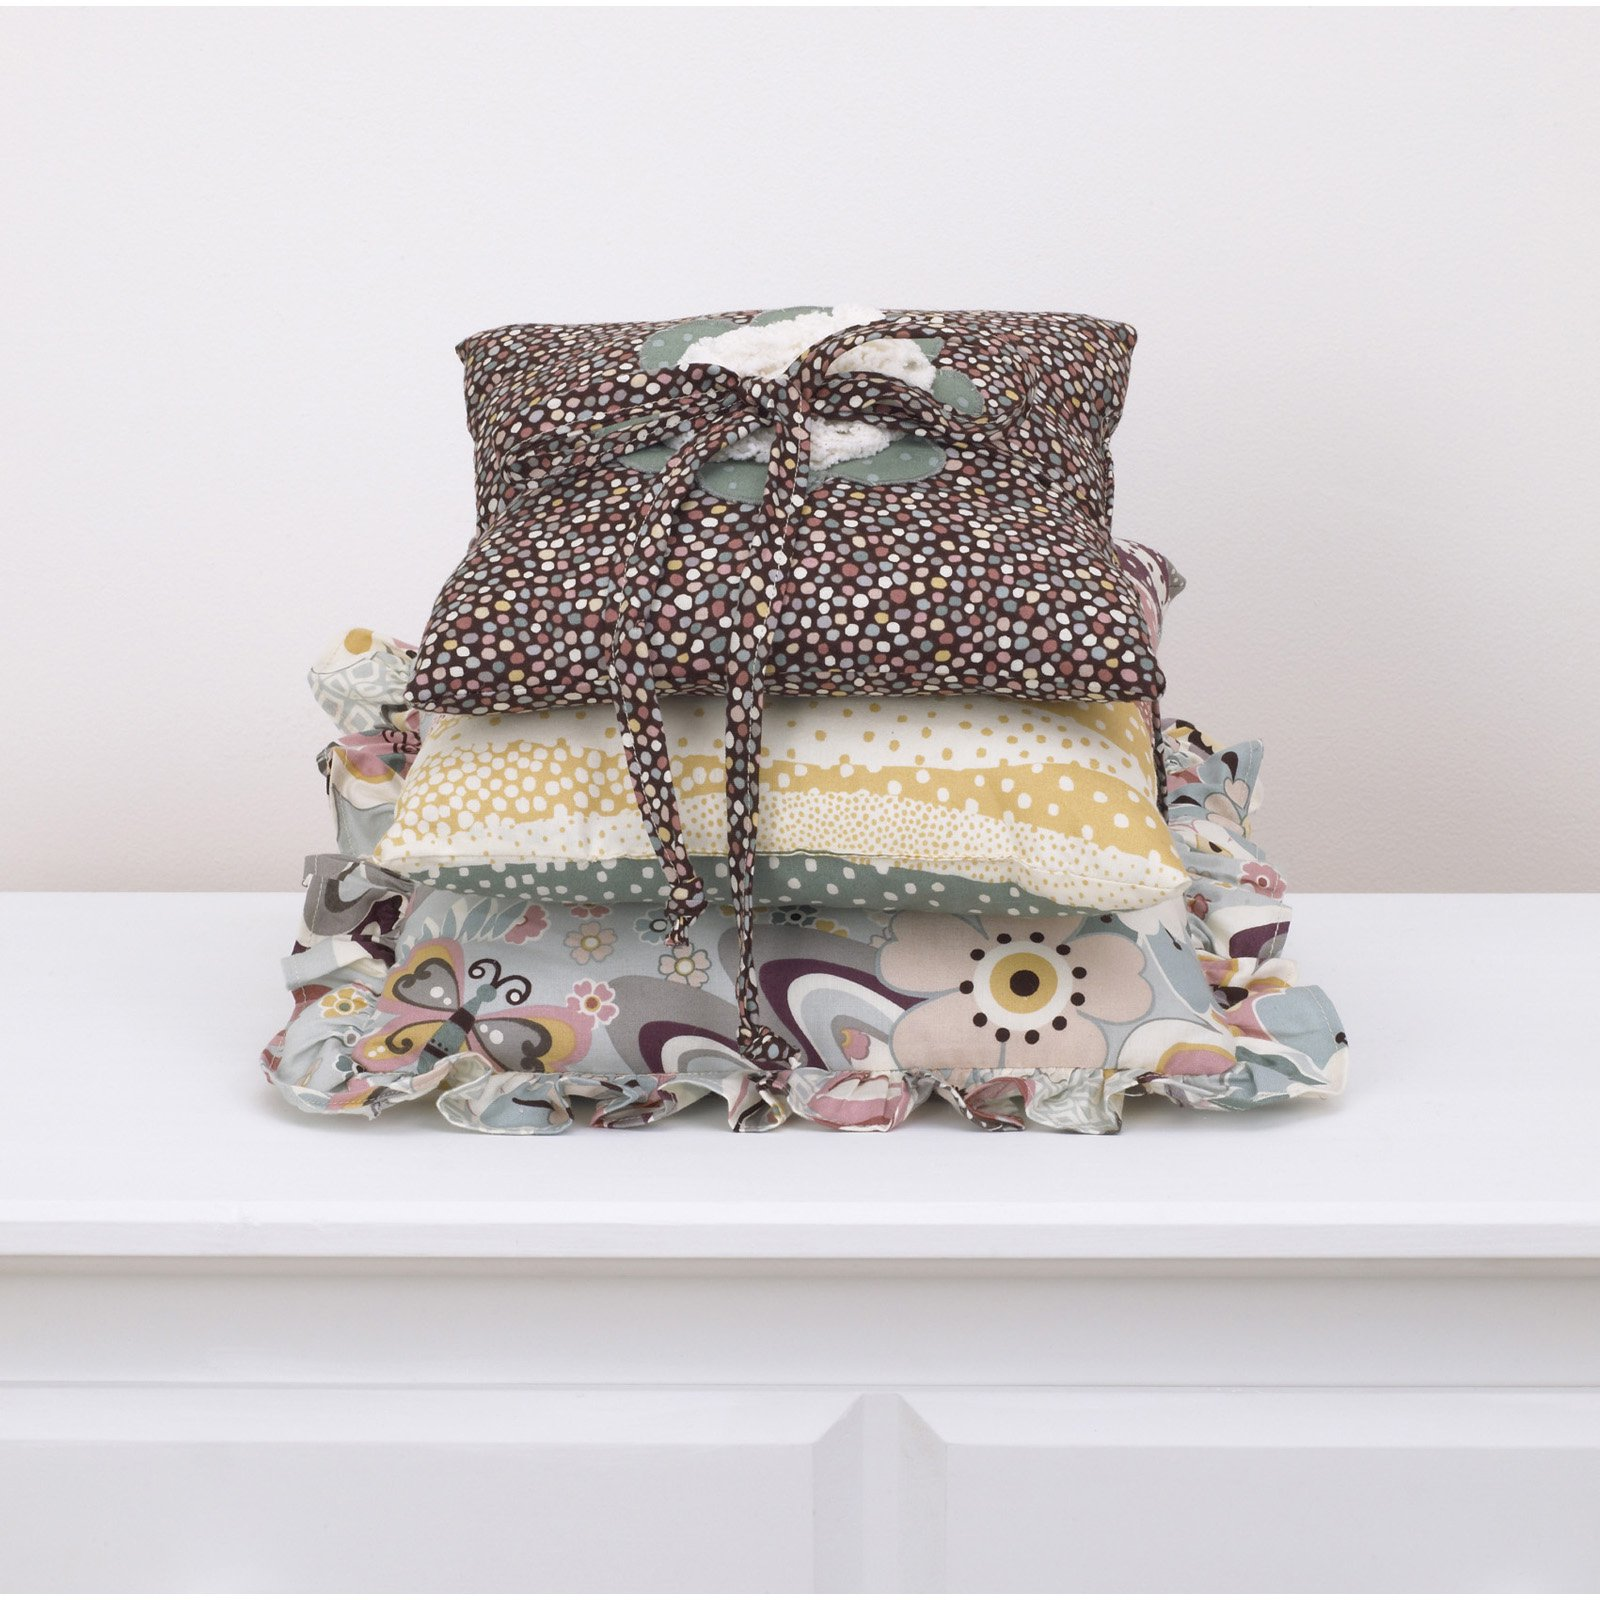 Cotton Tale Designs Penny Lane 3 Piece Decorative Pillow